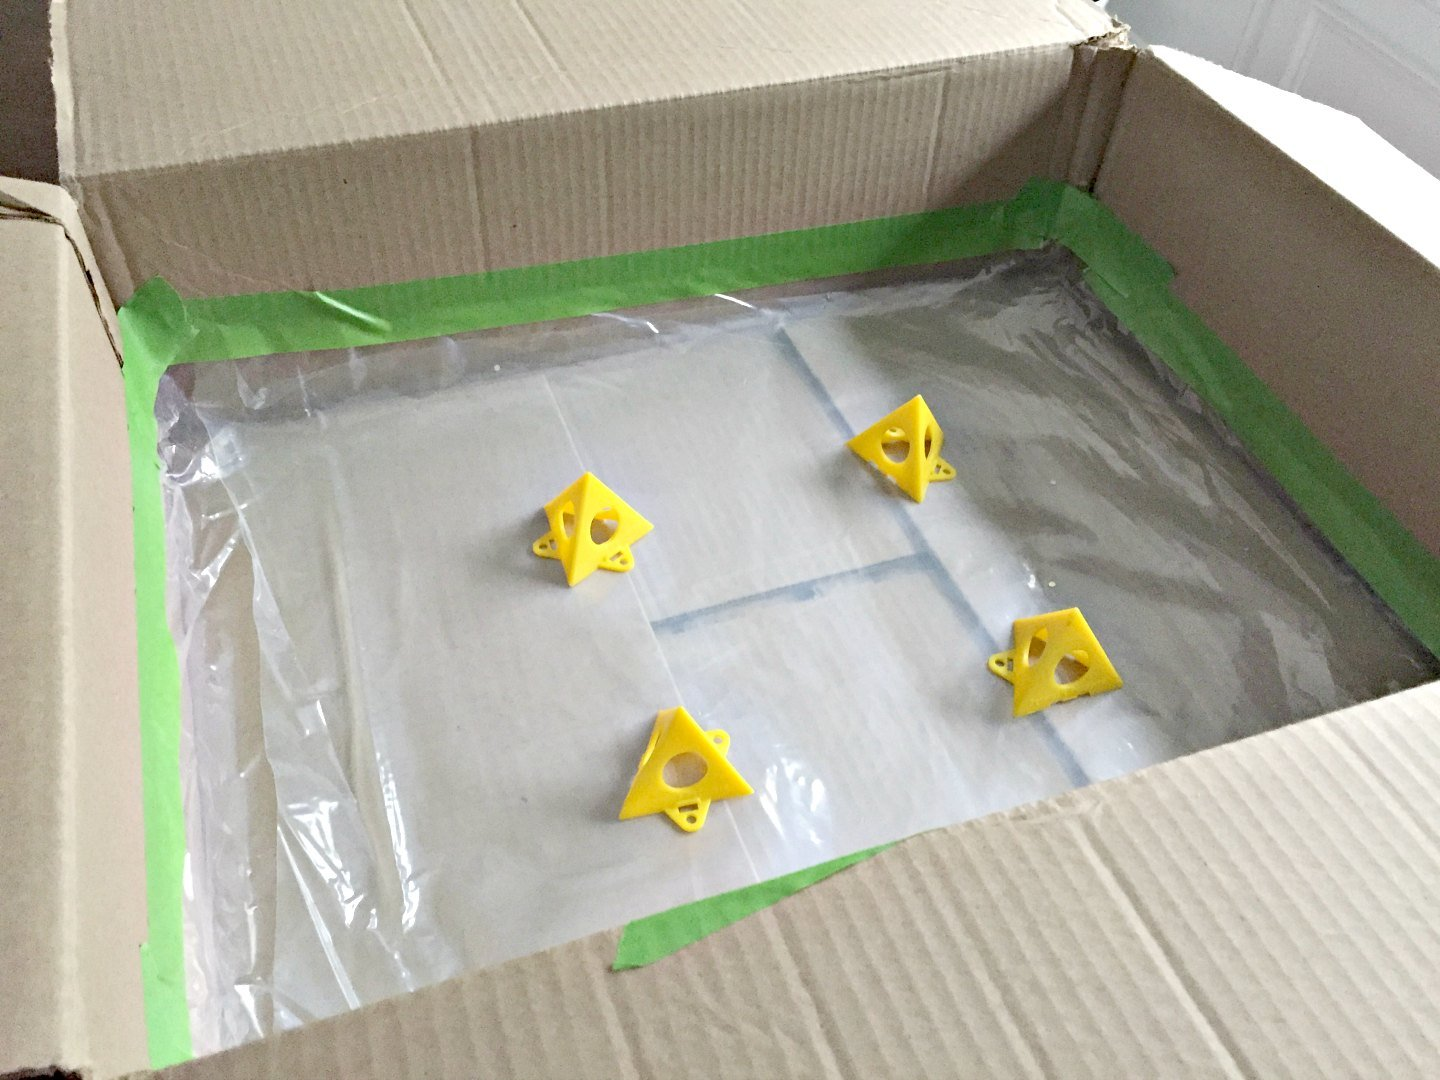 cardboard box with plastic lining and plastic pyramids to support painting